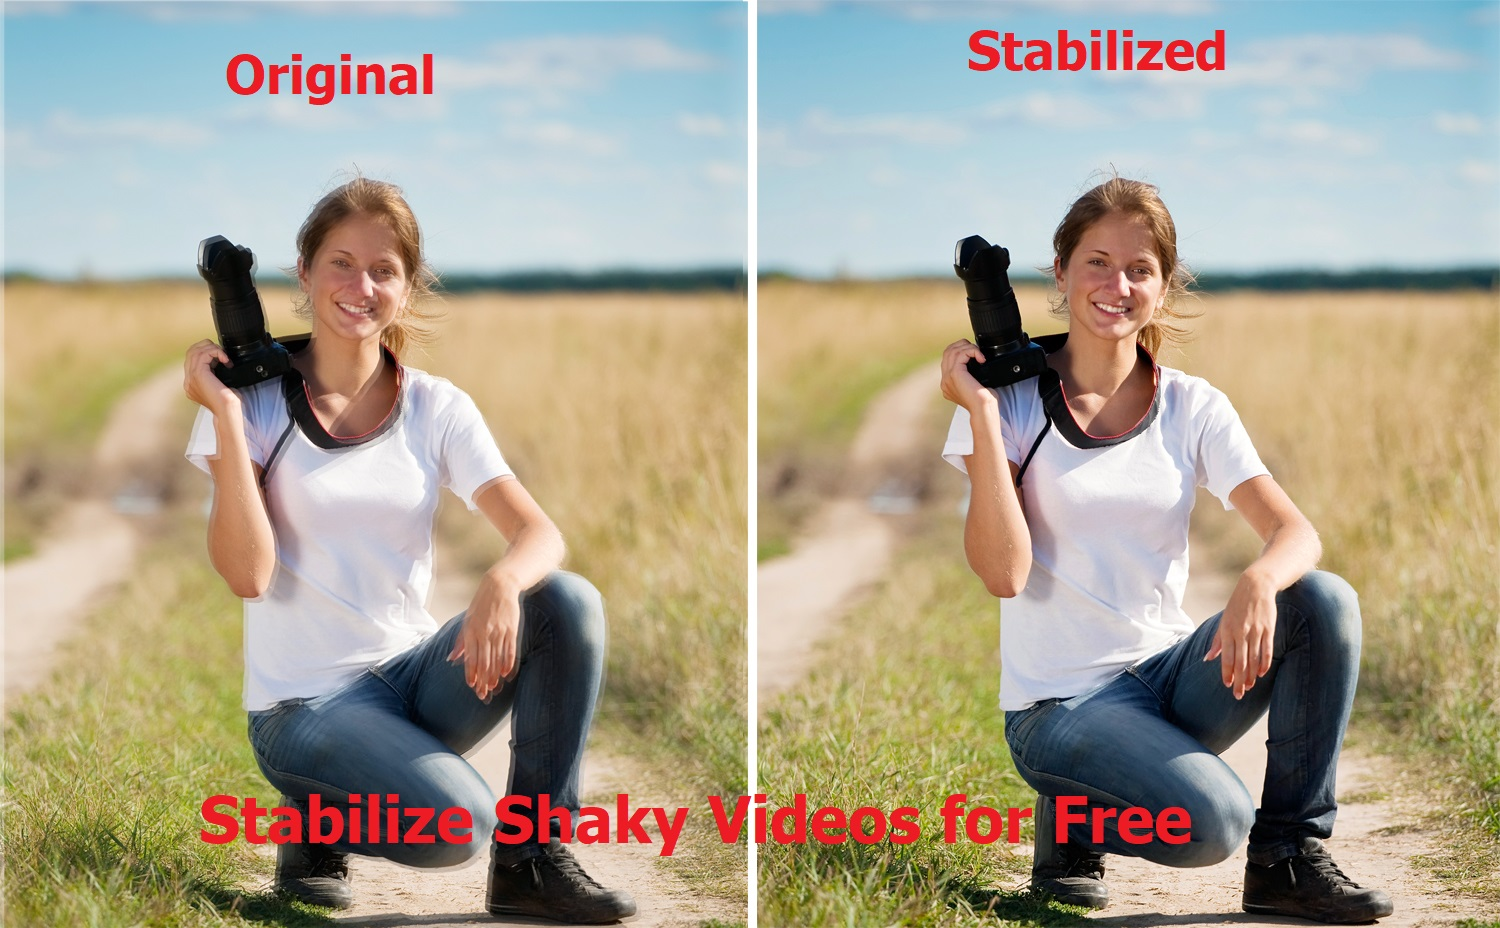 Learn New Things: How to Stabilize Shaky Videos Free & Easy